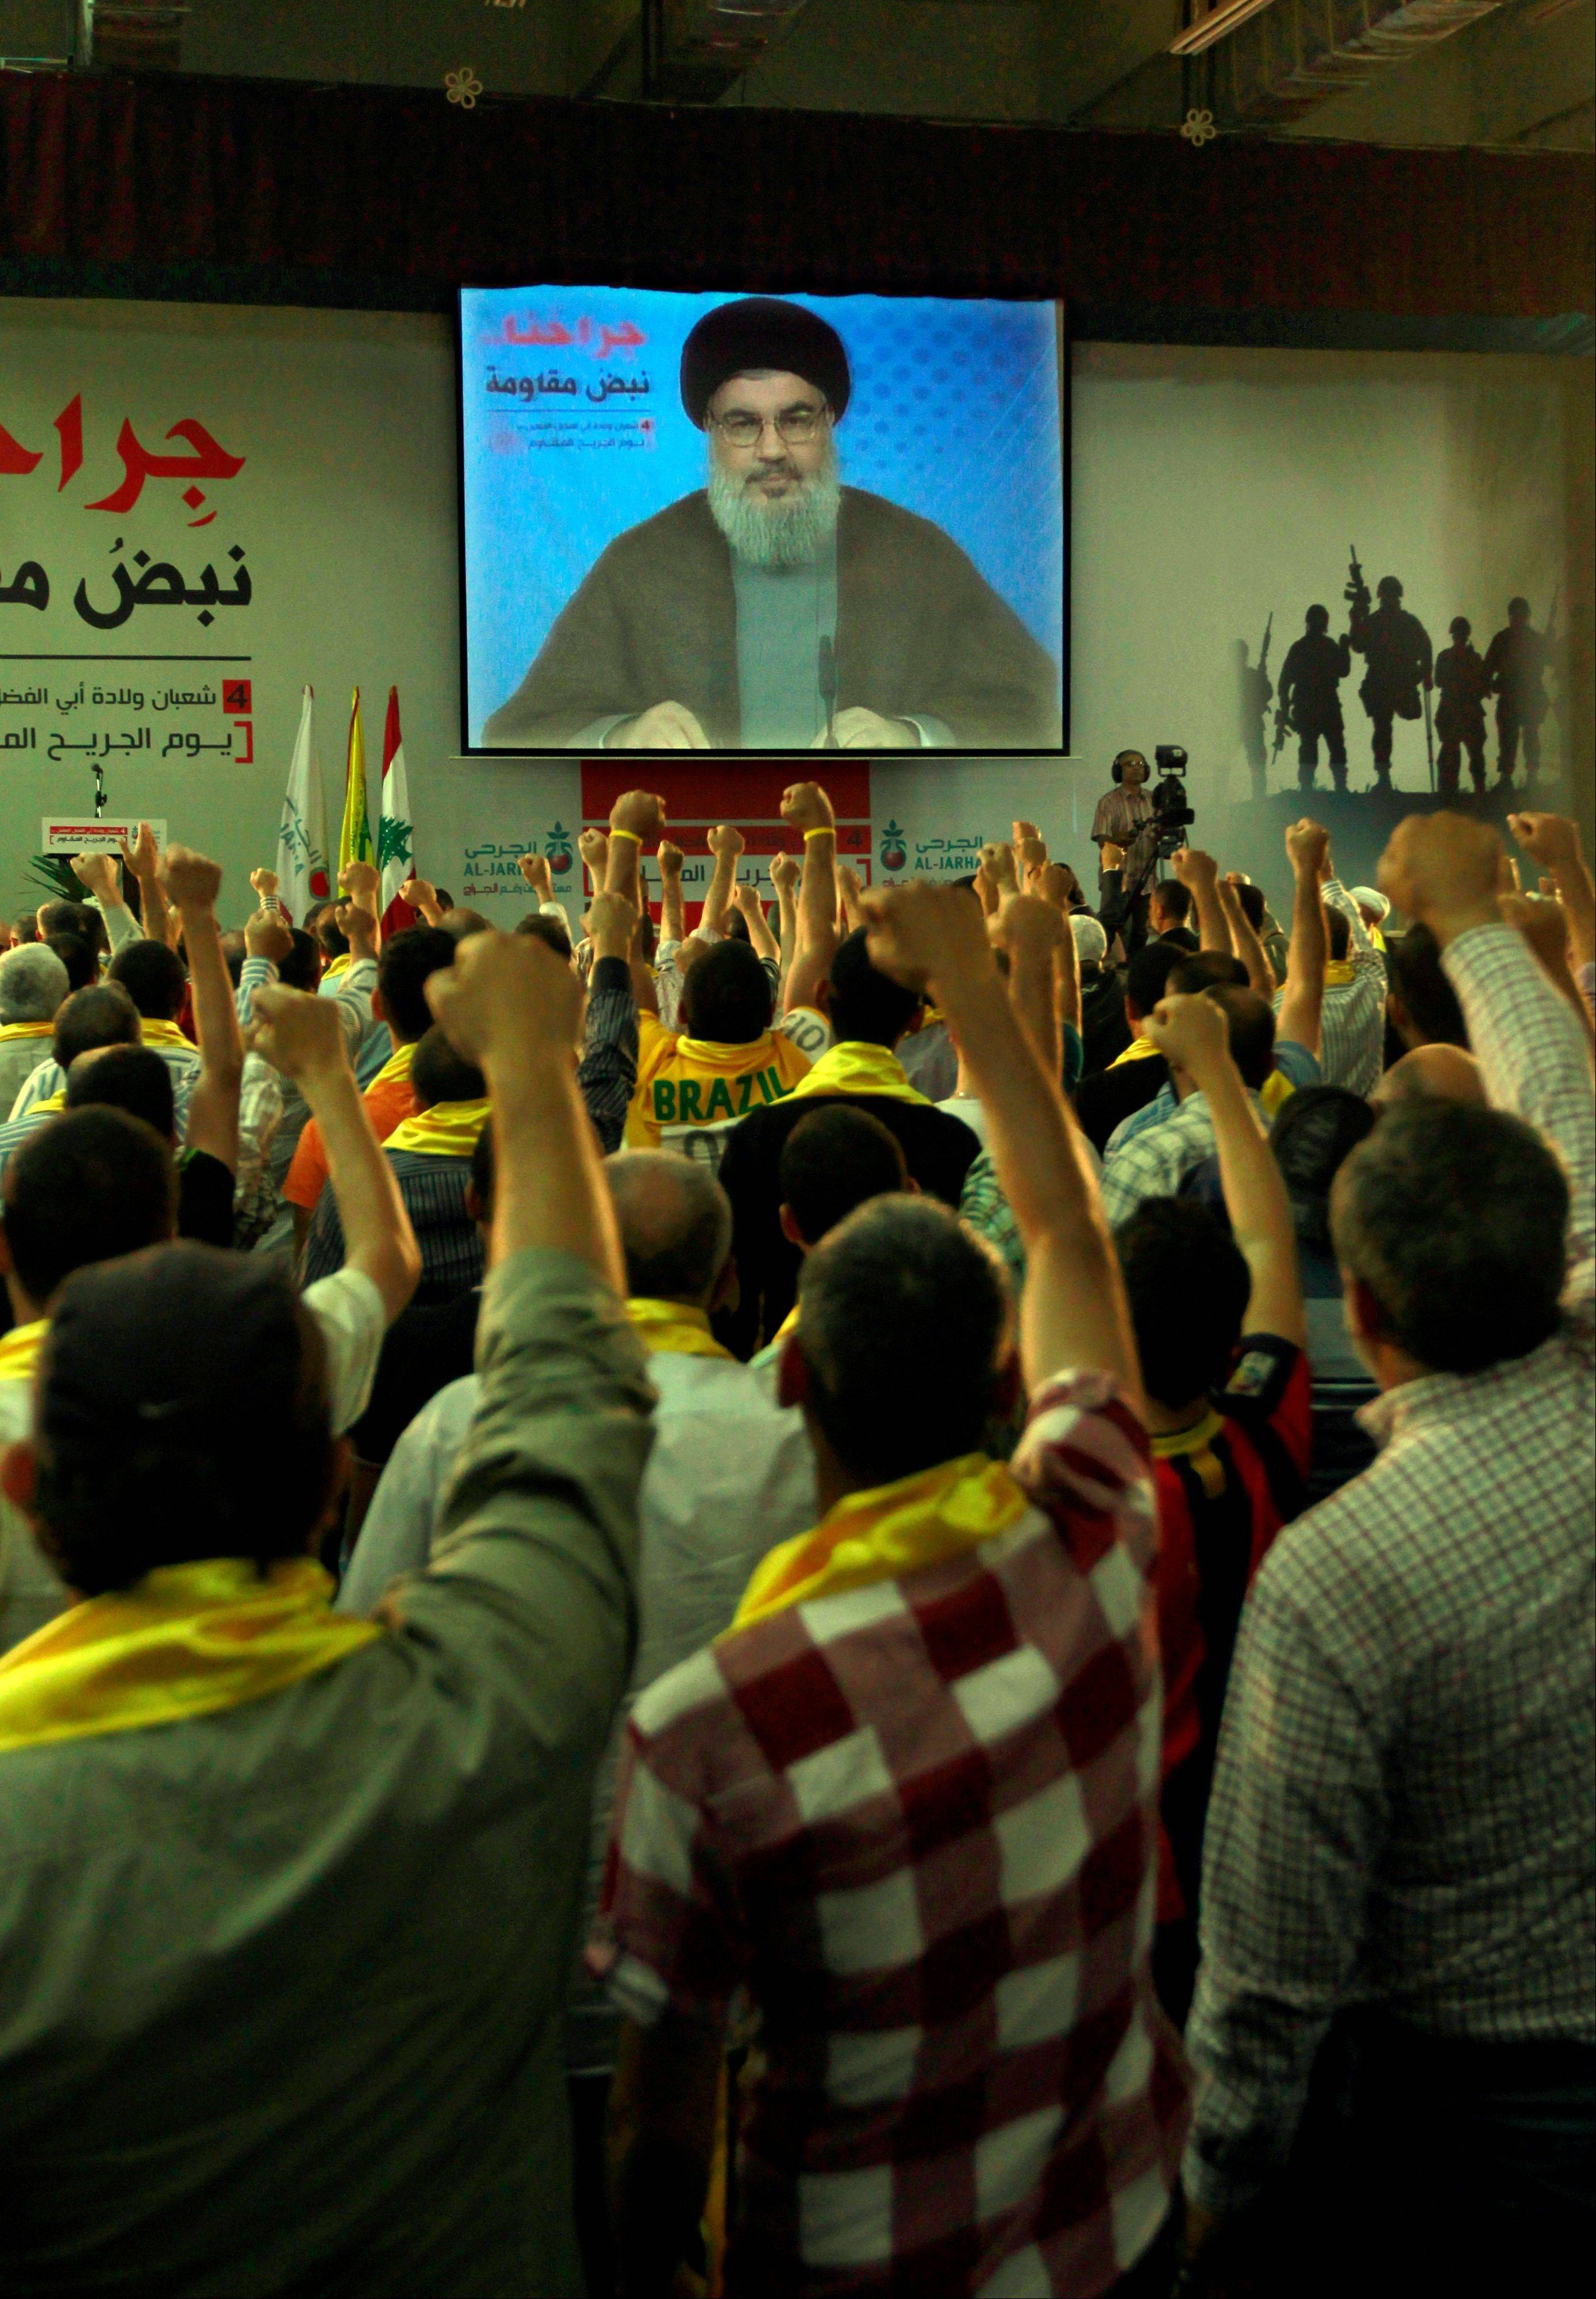 Hezbollah supporters raise their hands in salute as Hezbollah leader Shei